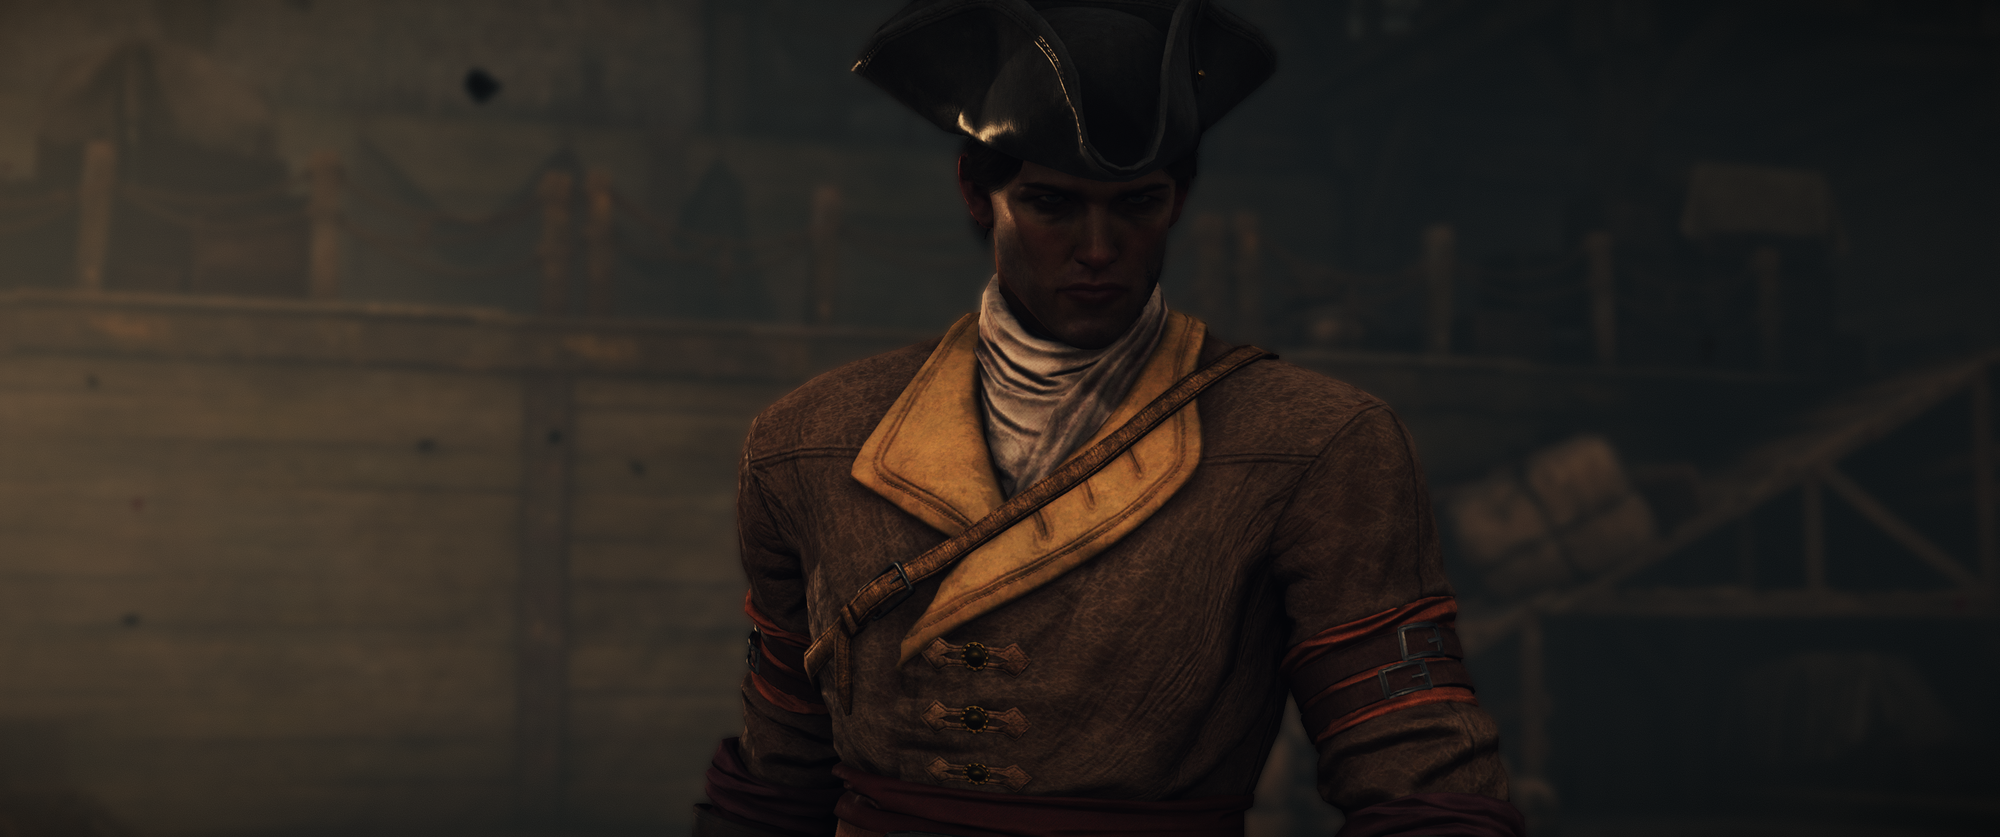 Greedfall Screenshot 2019.09.10 - 23.13.23.38.png